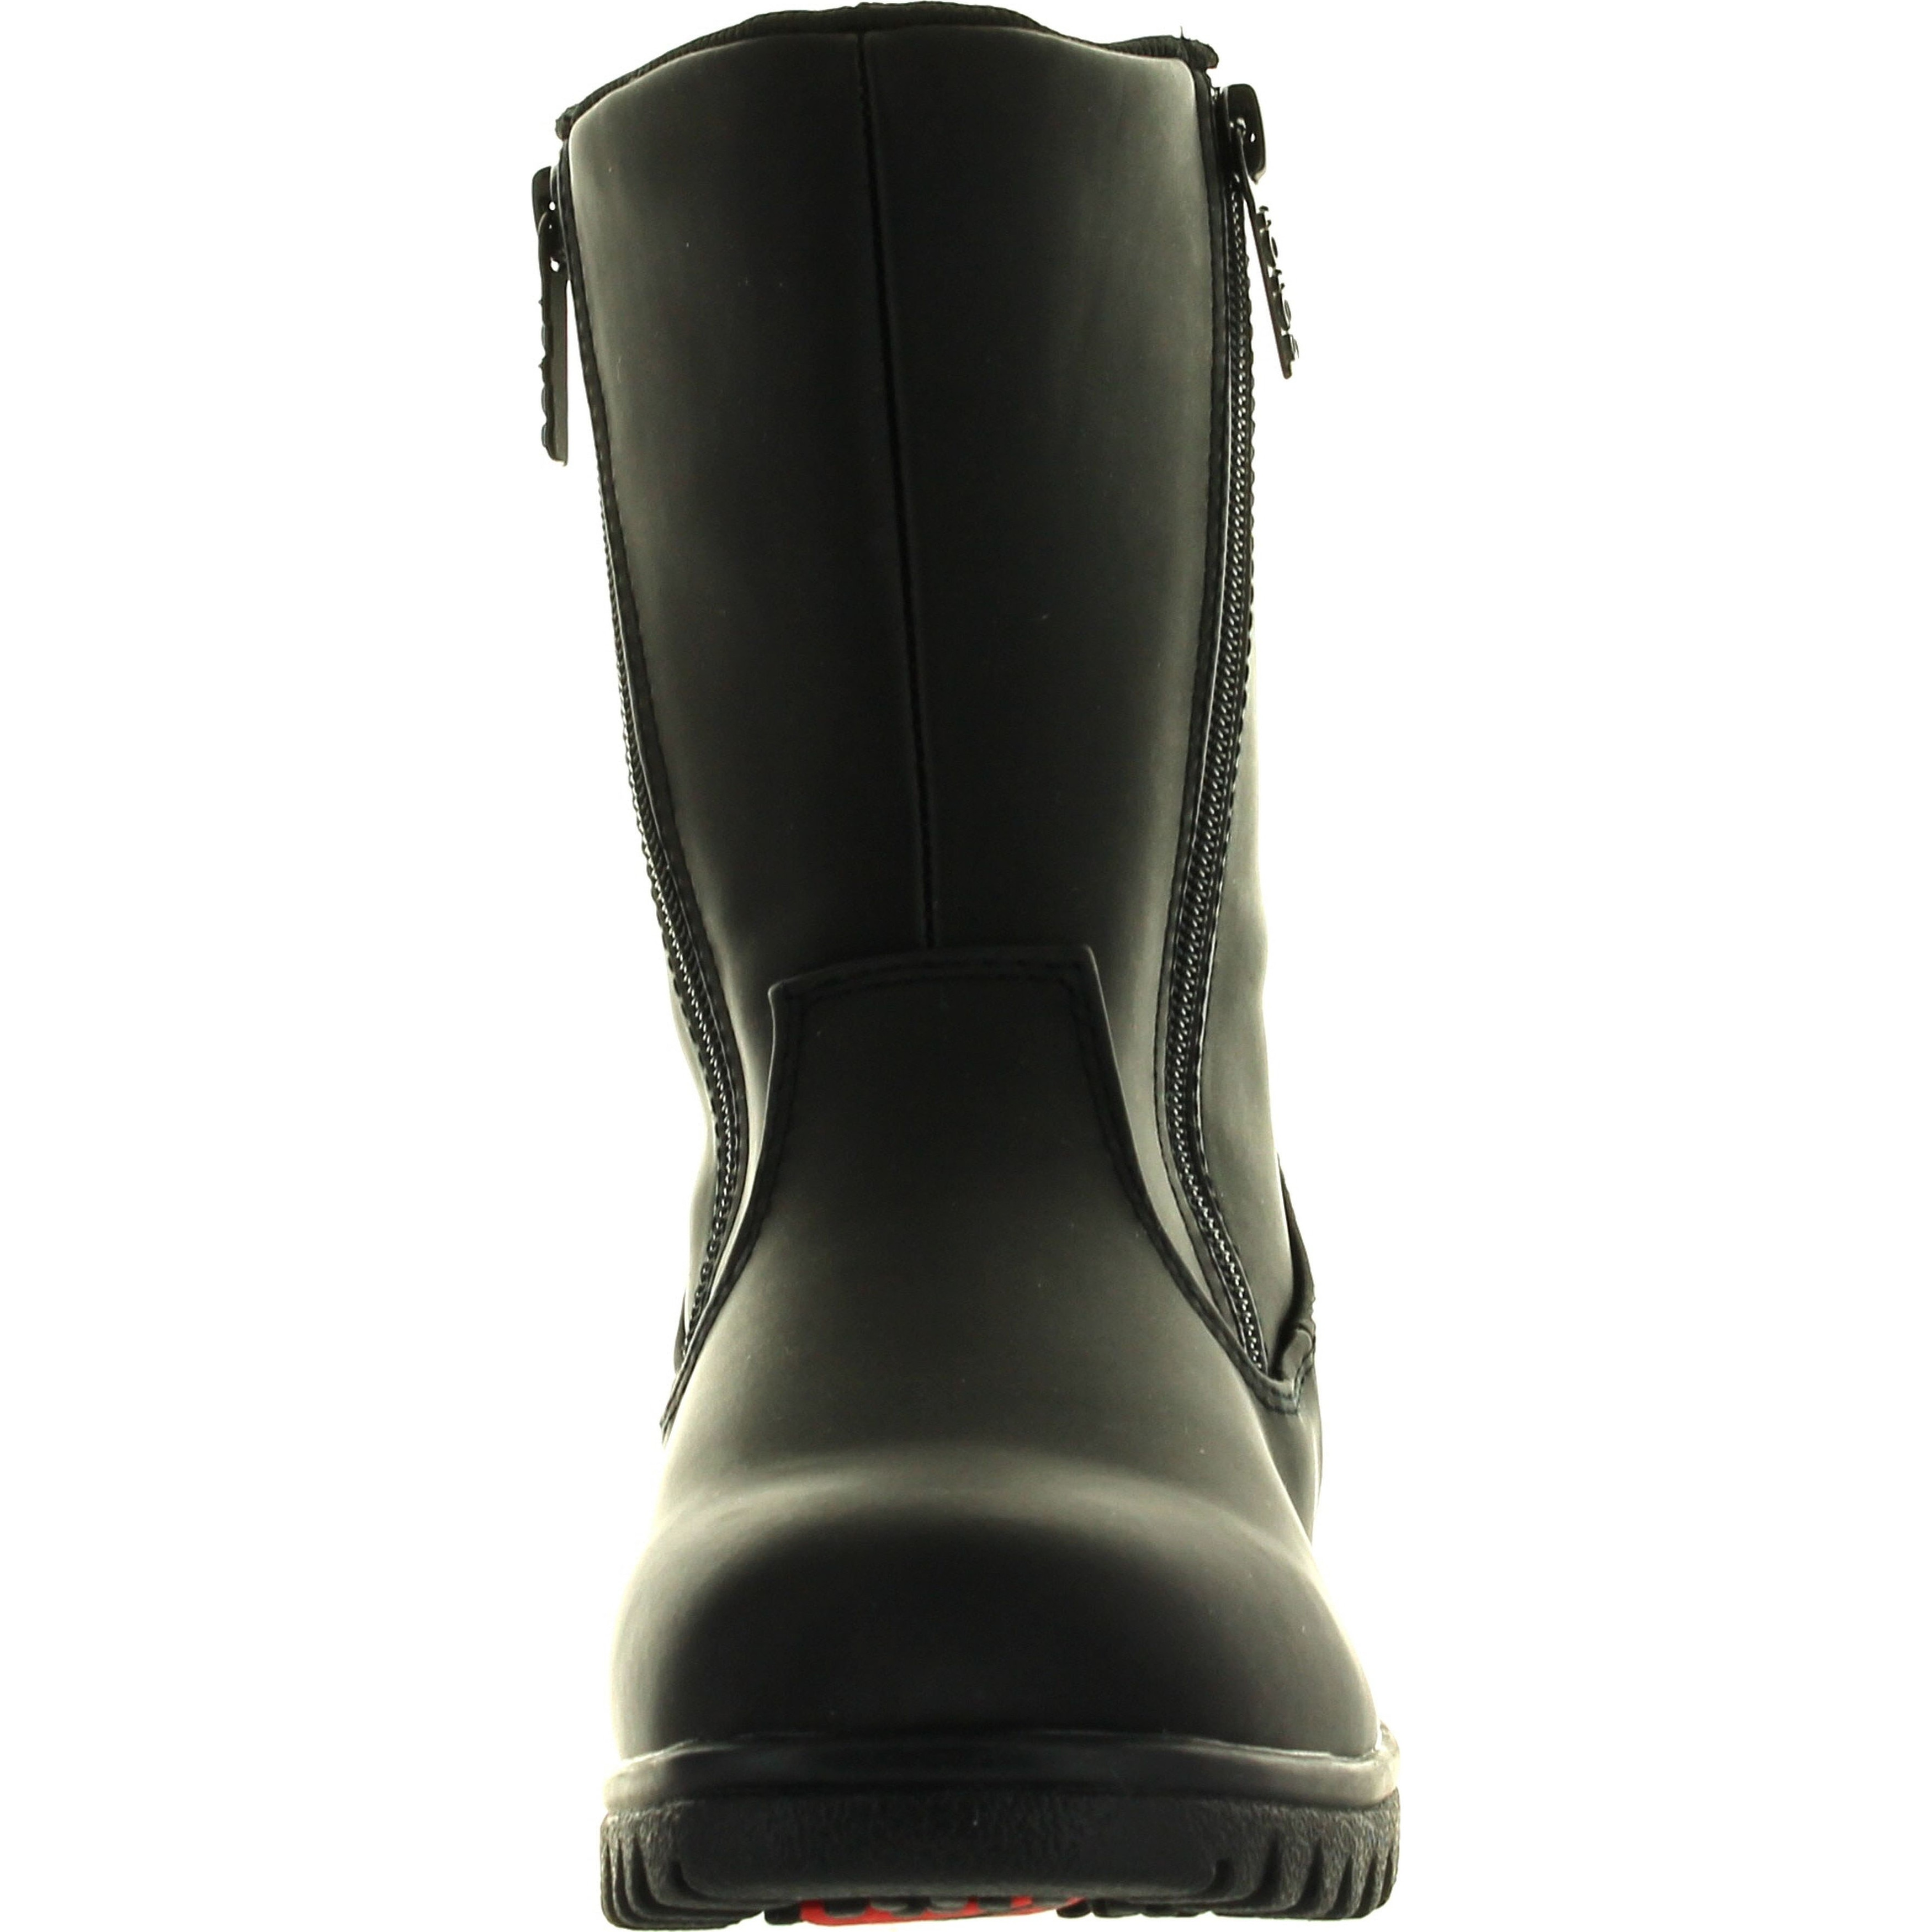 d8db28510ce3 Shop Totes Womens Rosie 2 Winter Waterproof Snow Boots - Black - Free  Shipping Today - Overstock - 14312443